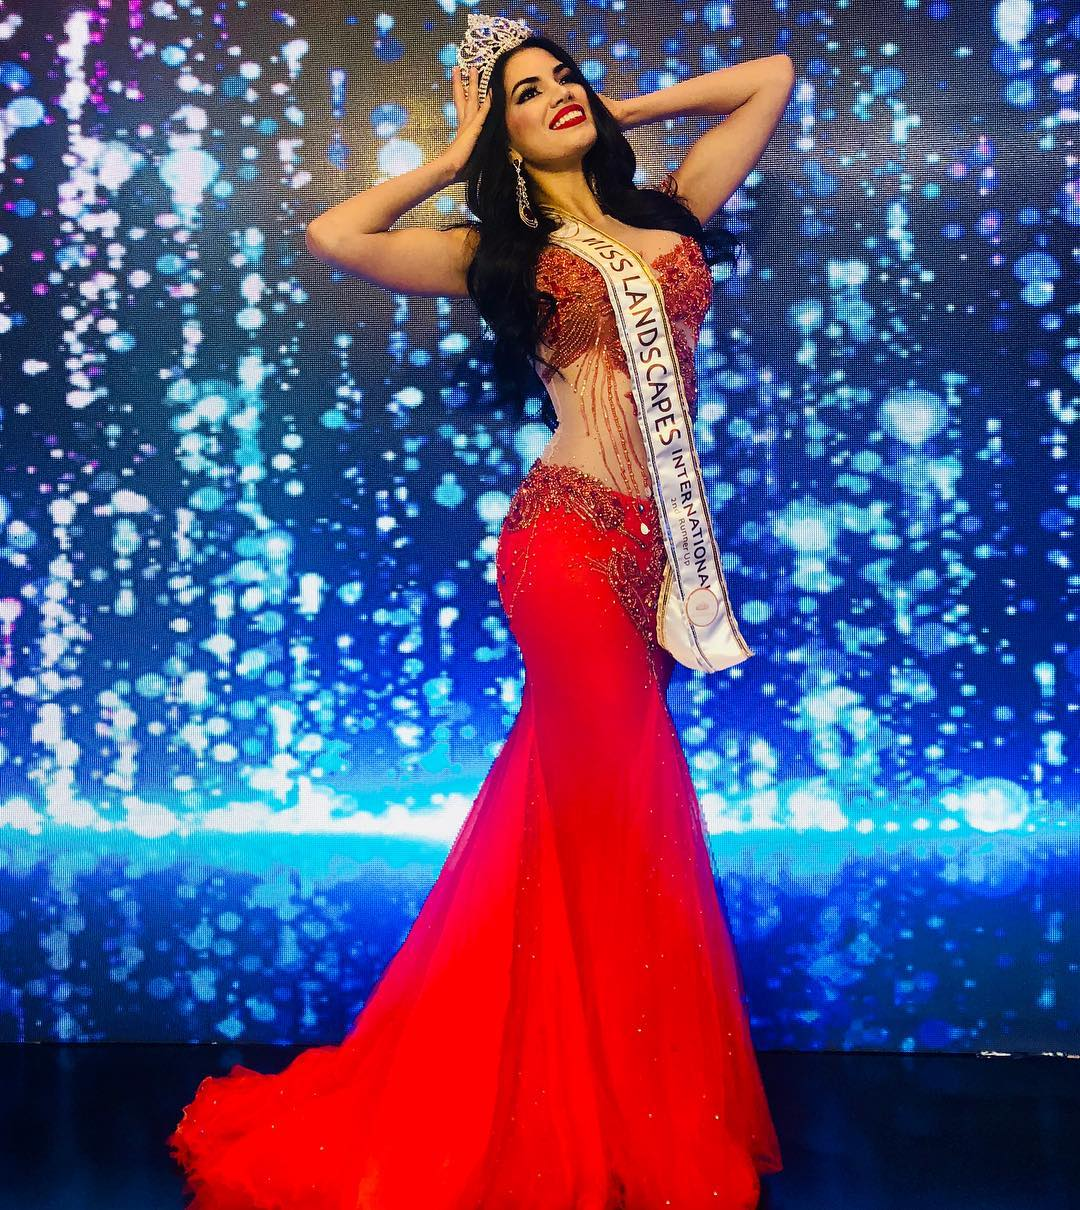 samantha batallanos, 3rd runner-up de miss landscapes international 2018. - Página 2 34837310